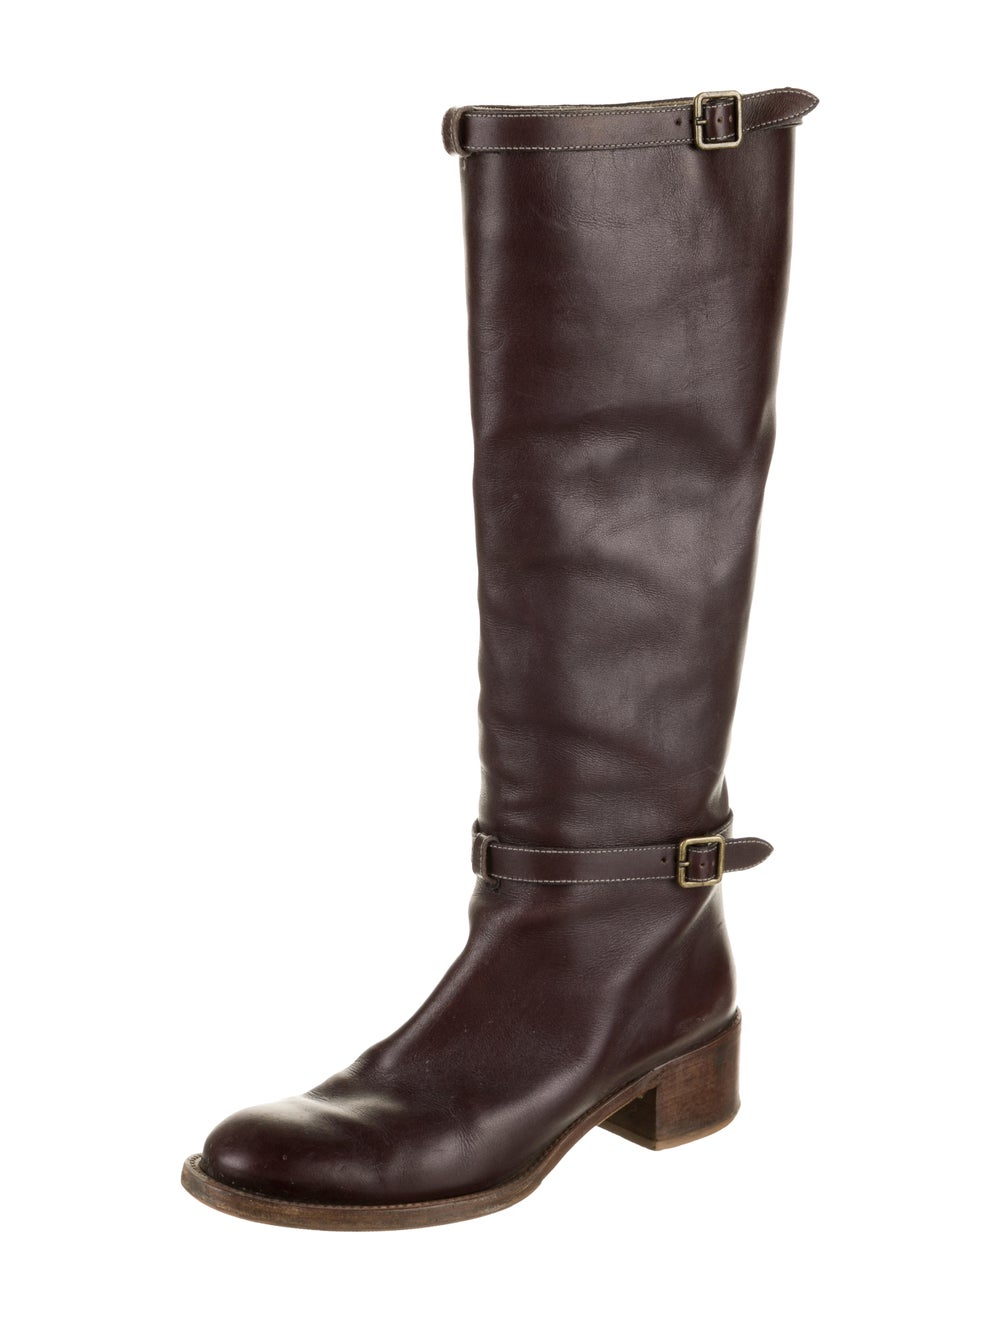 Chloé Leather Knee-High Boots Brown - image 2